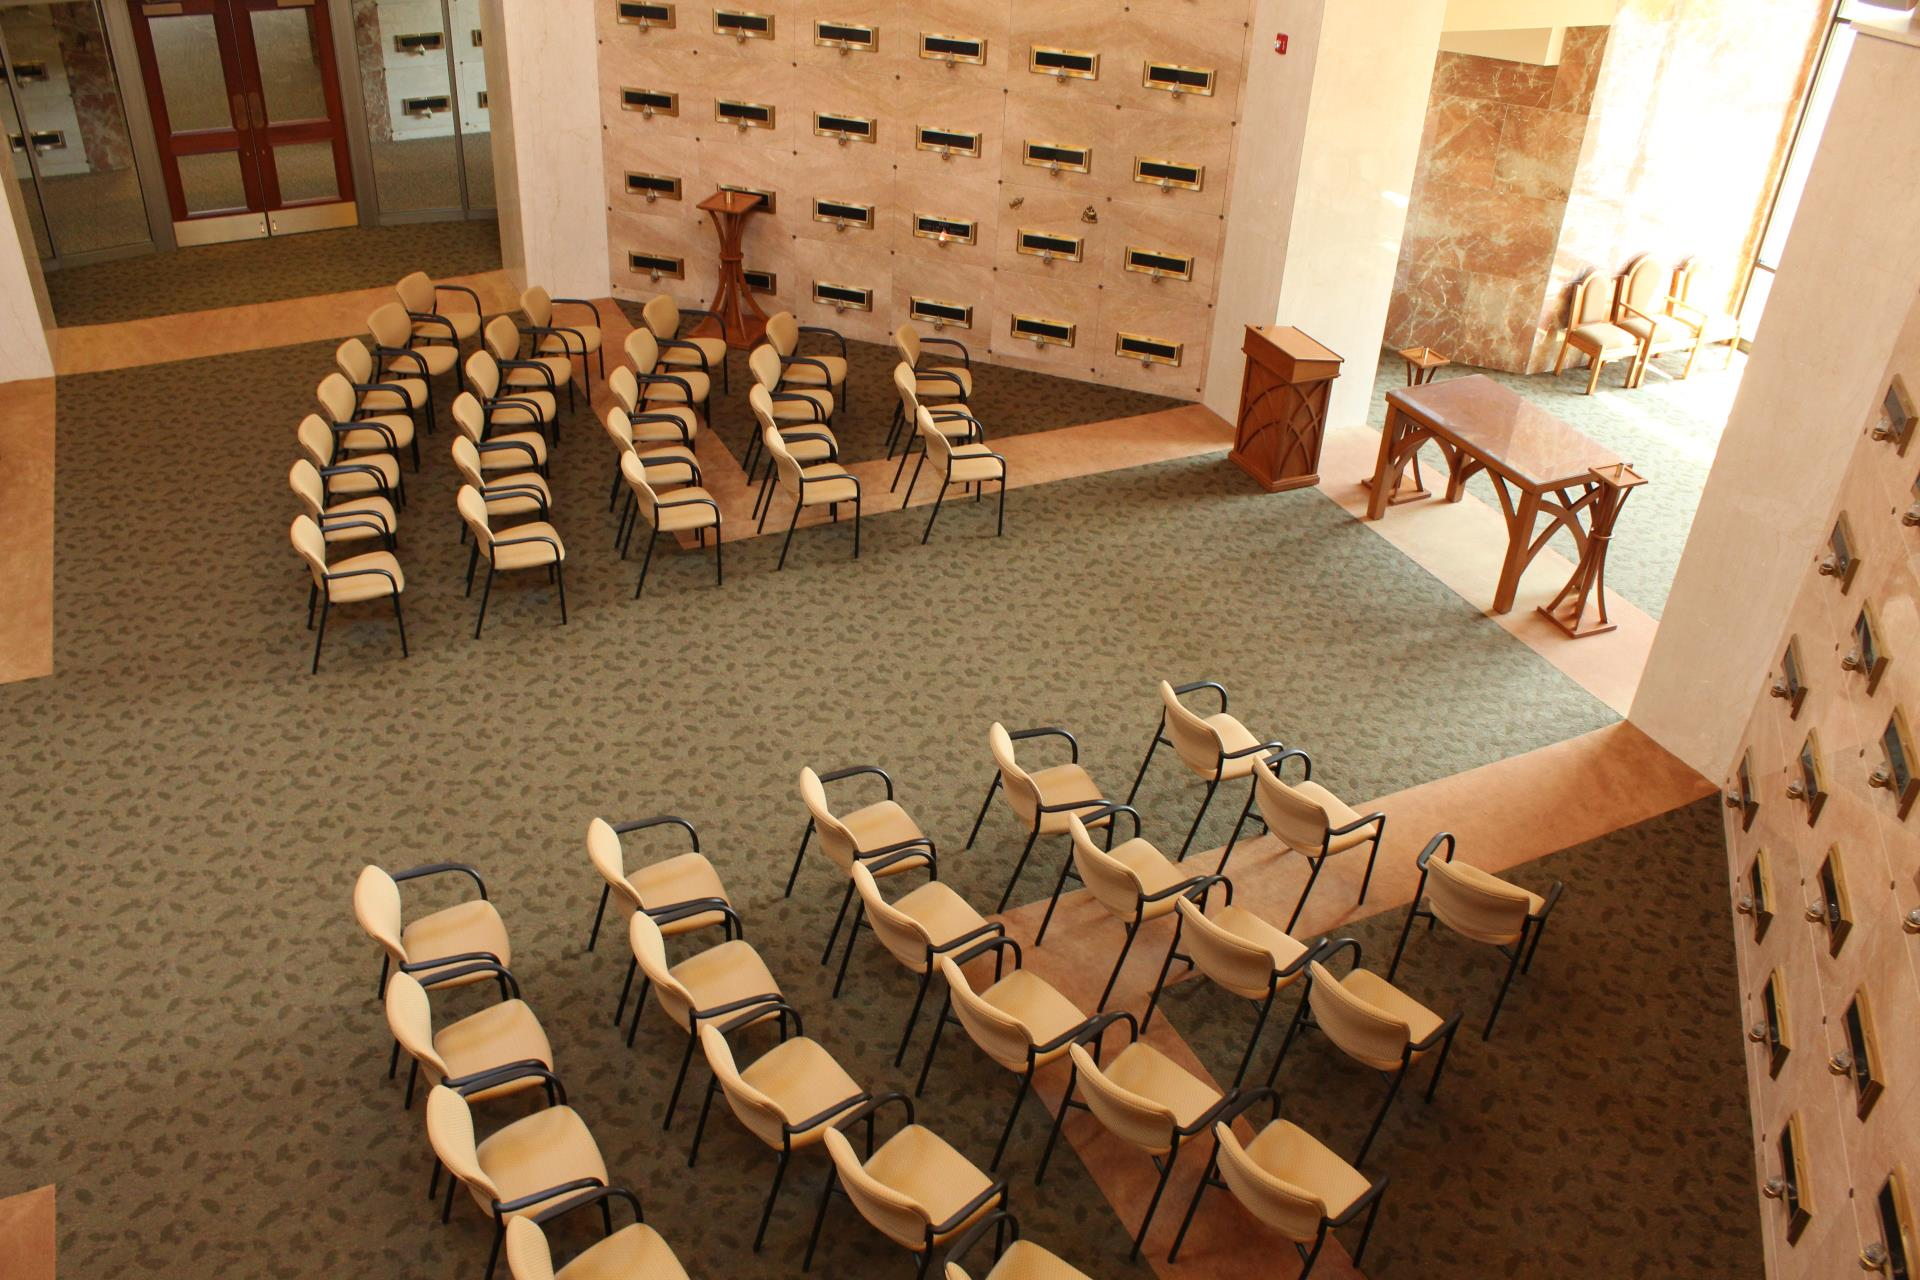 chapel interior with seats set up for a service